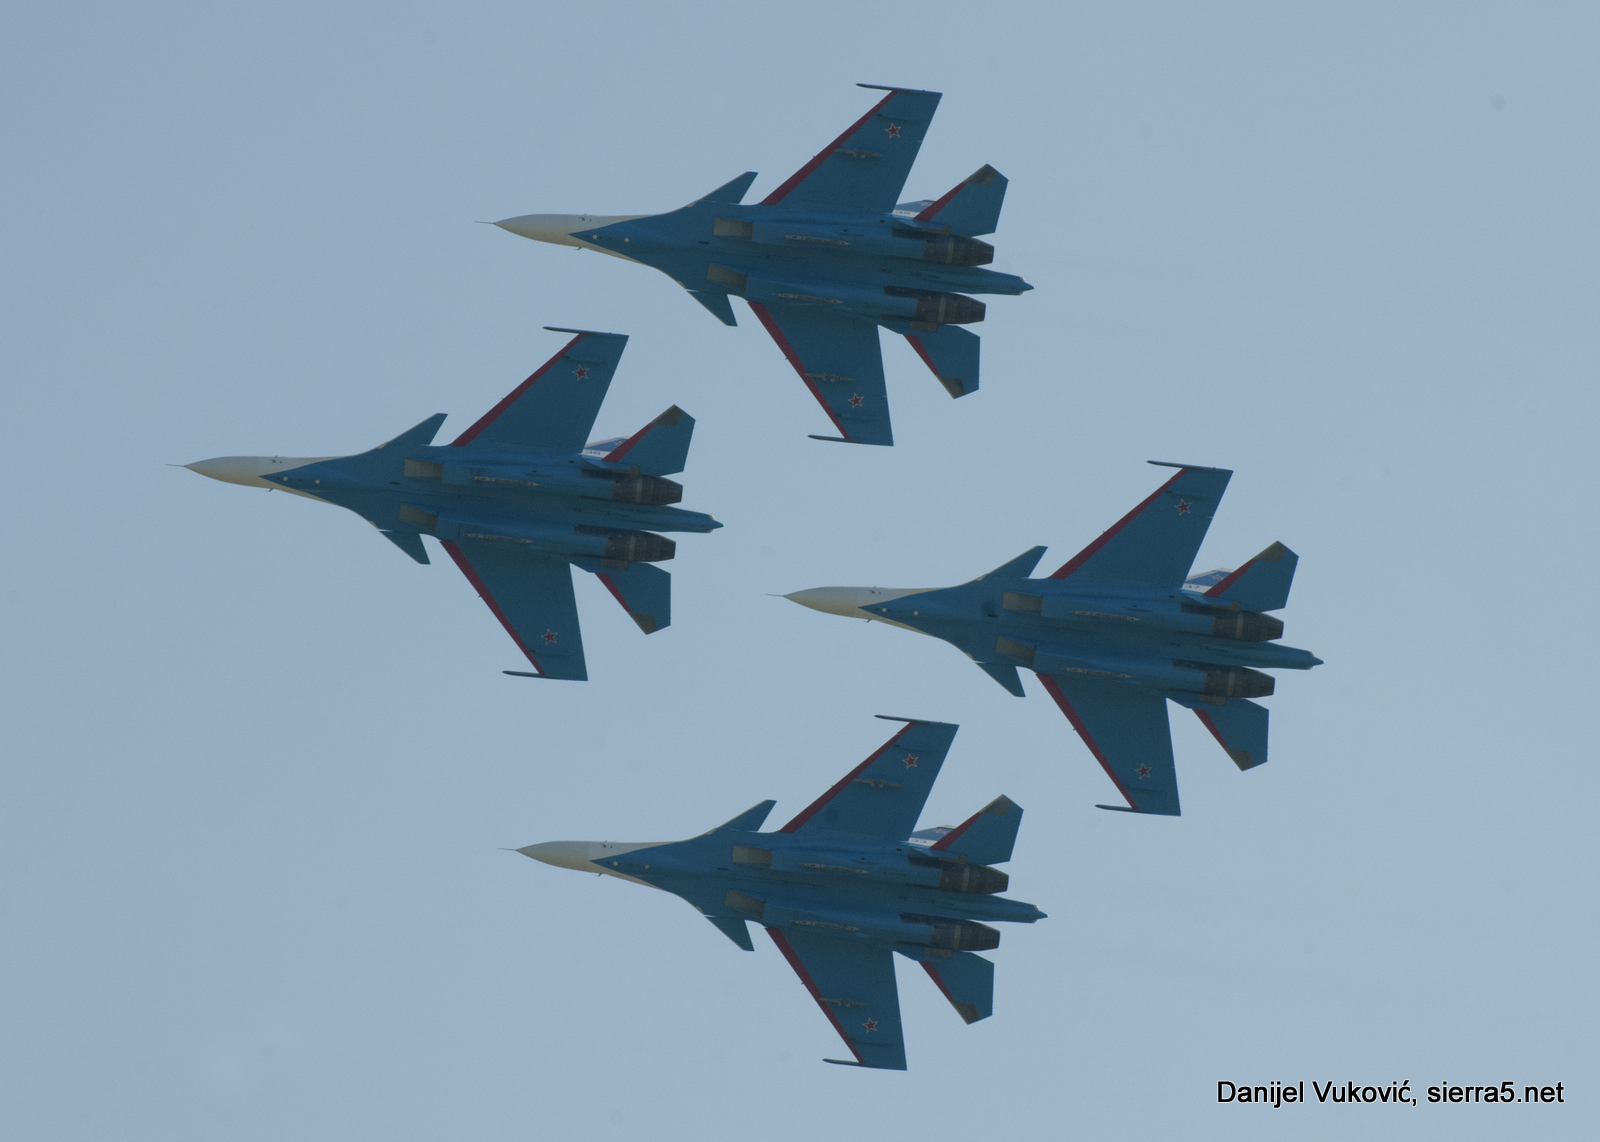 Group flight display of Russian Knights which this MAKS for the first time appeared on Su-30SM